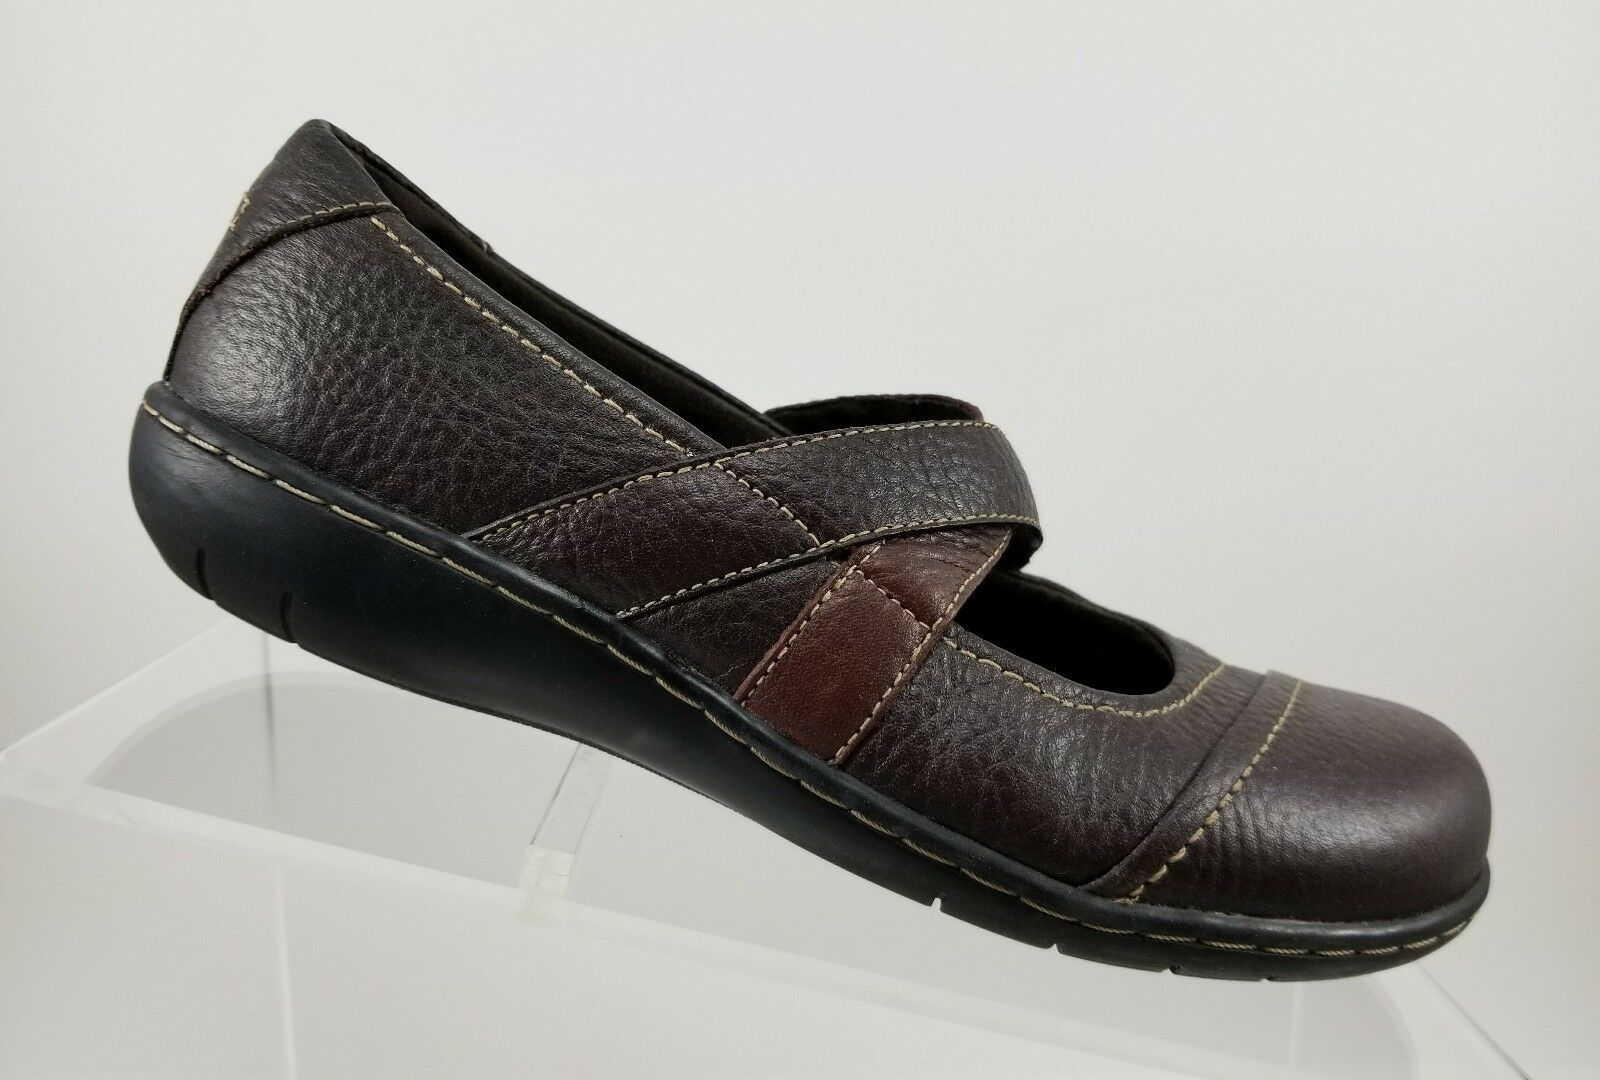 Clarks Bendables Women's Brown Leather 39257 Slip On Mary Jane shoes Sz 6.5M